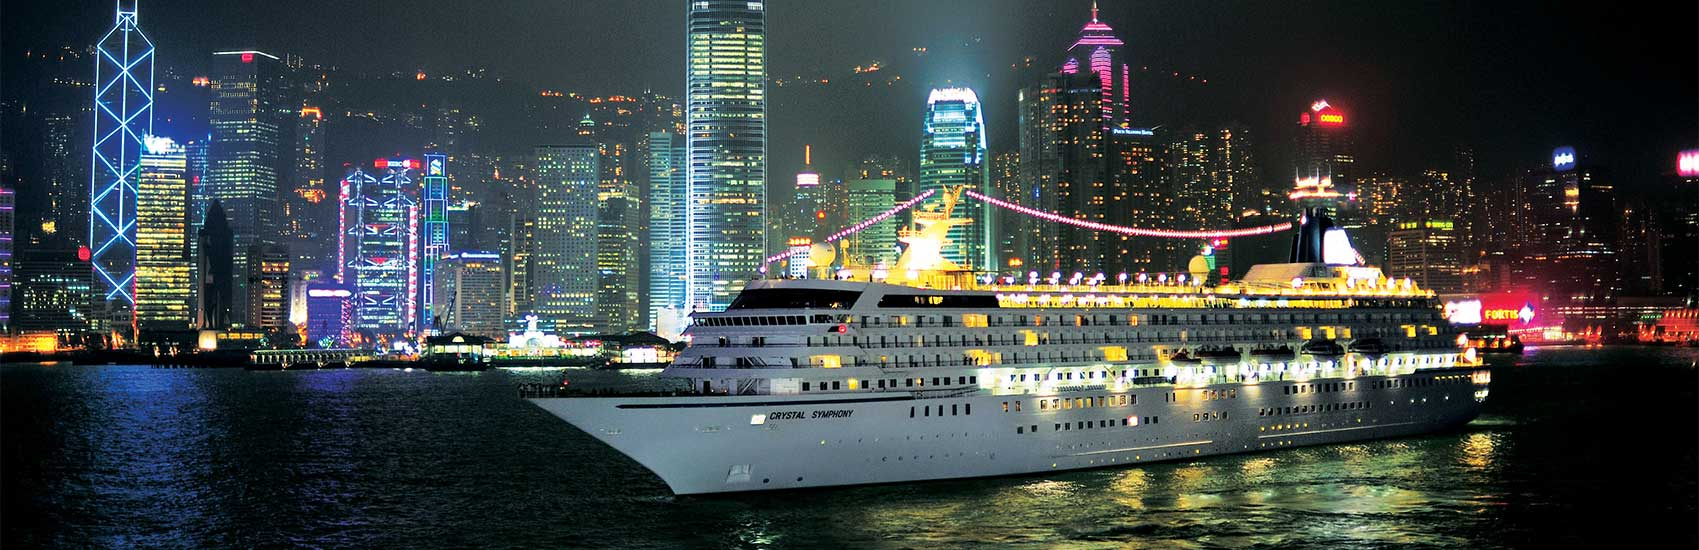 Book Now Savings to Asia with Crystal Cruises 3